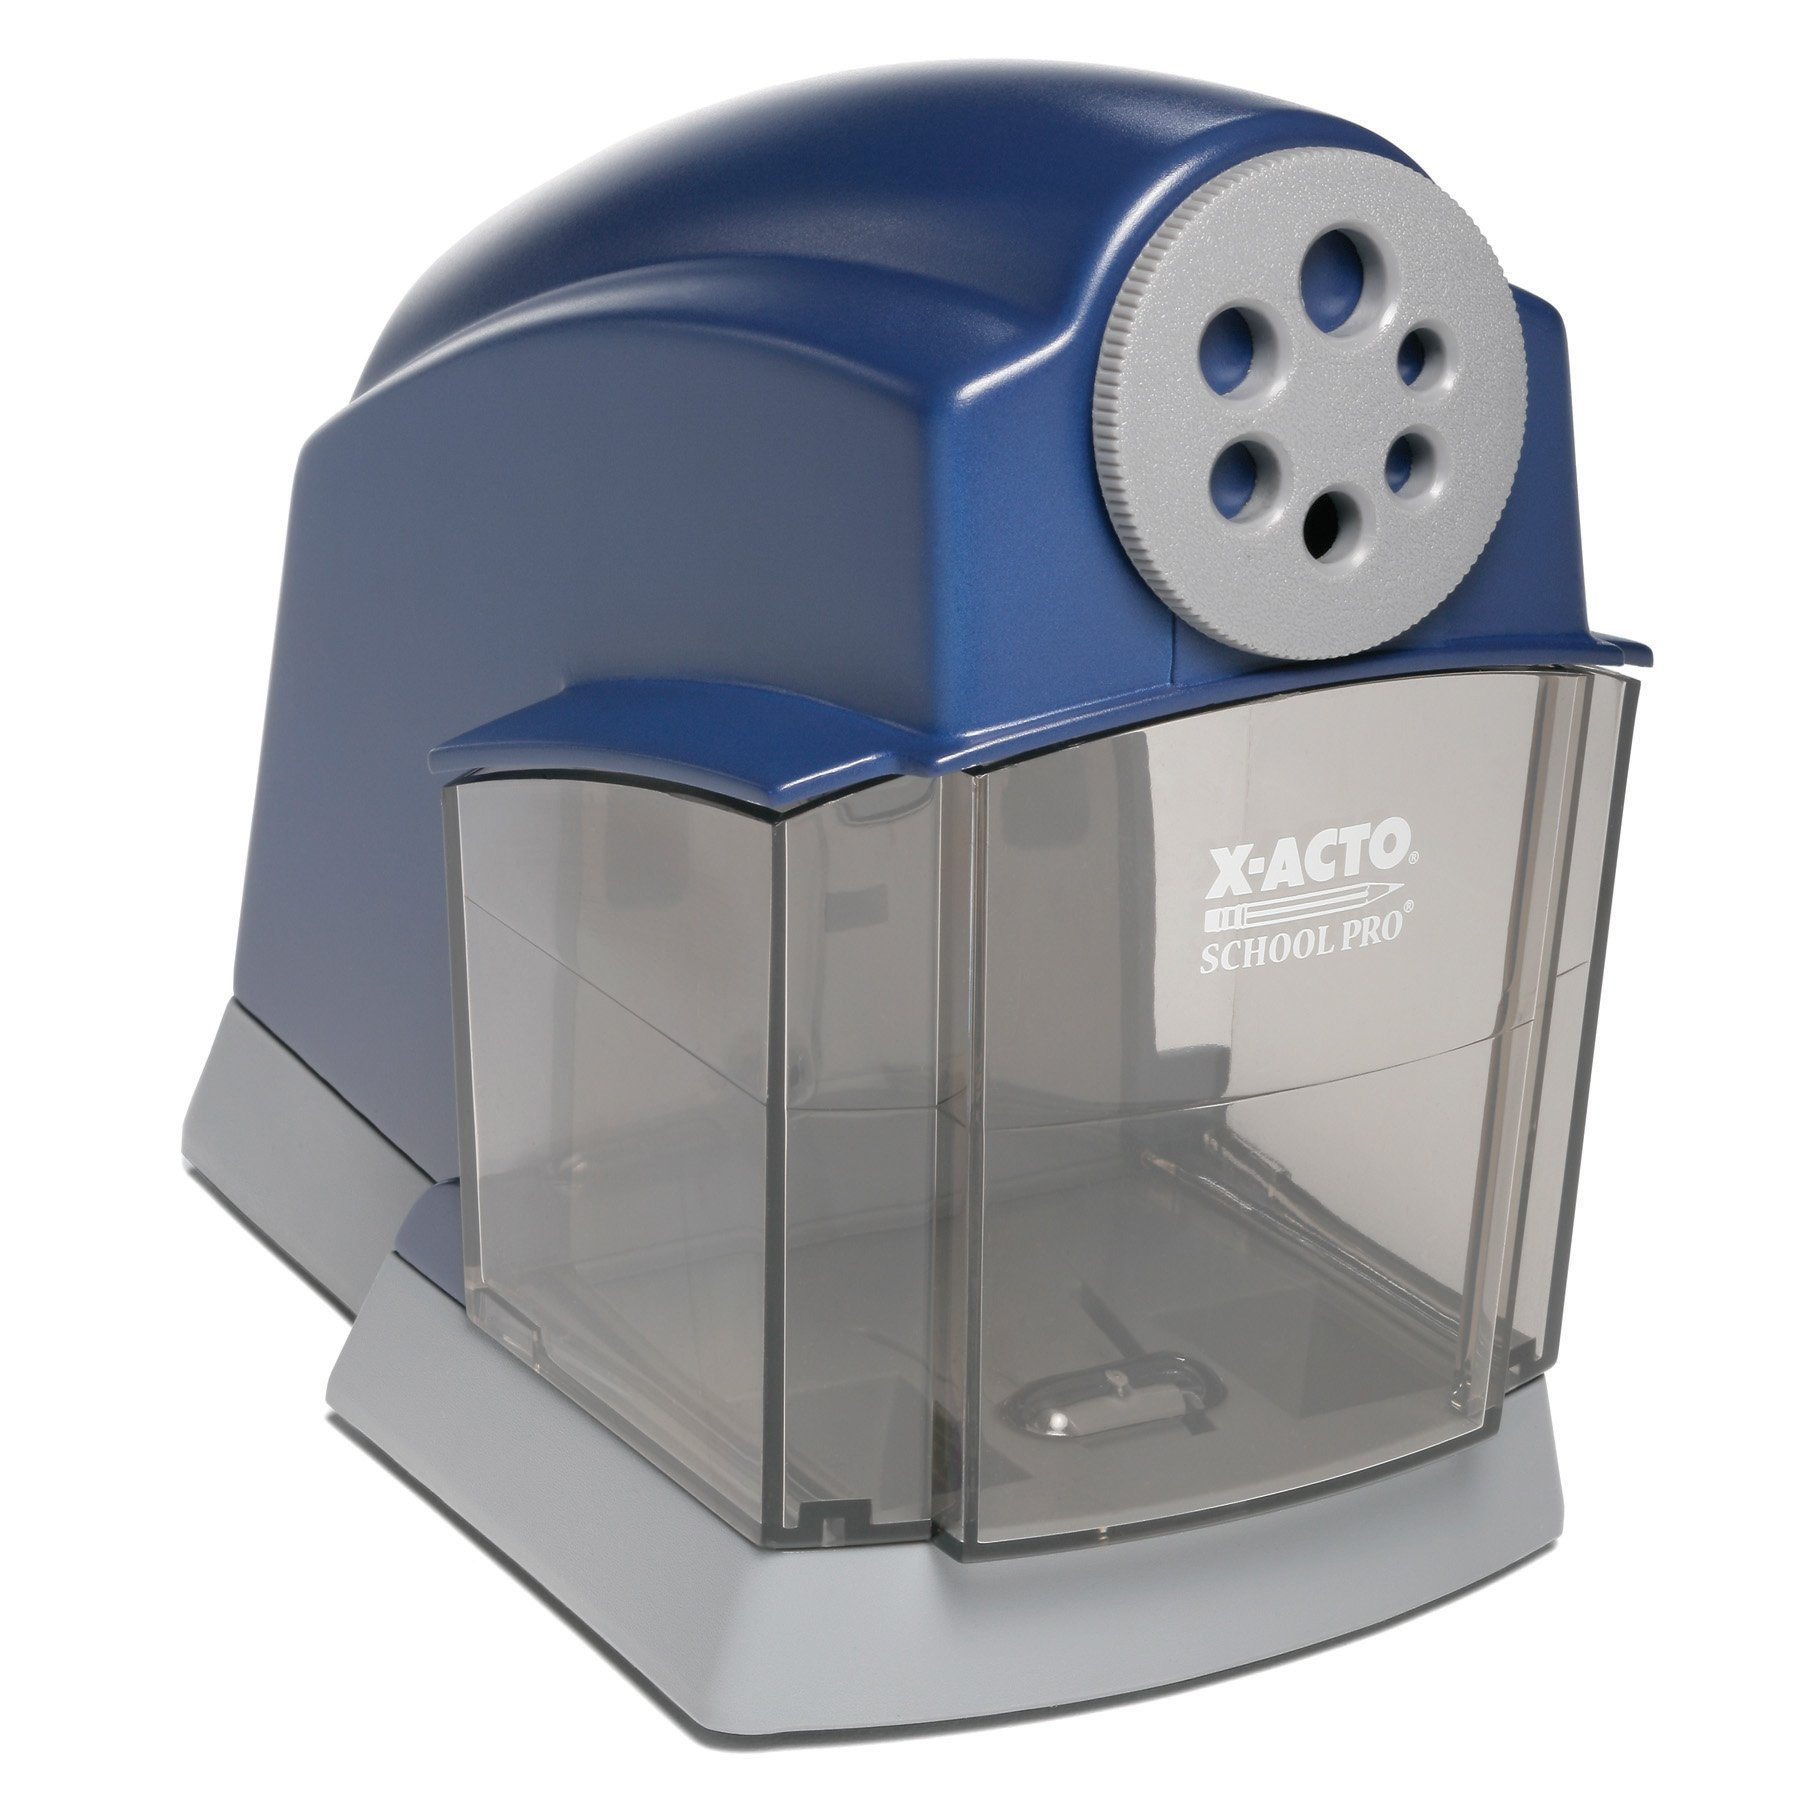 X-ACTO School Pro Classroom Electric Pencil Sharpener, Blue, 1 Count by X-Acto